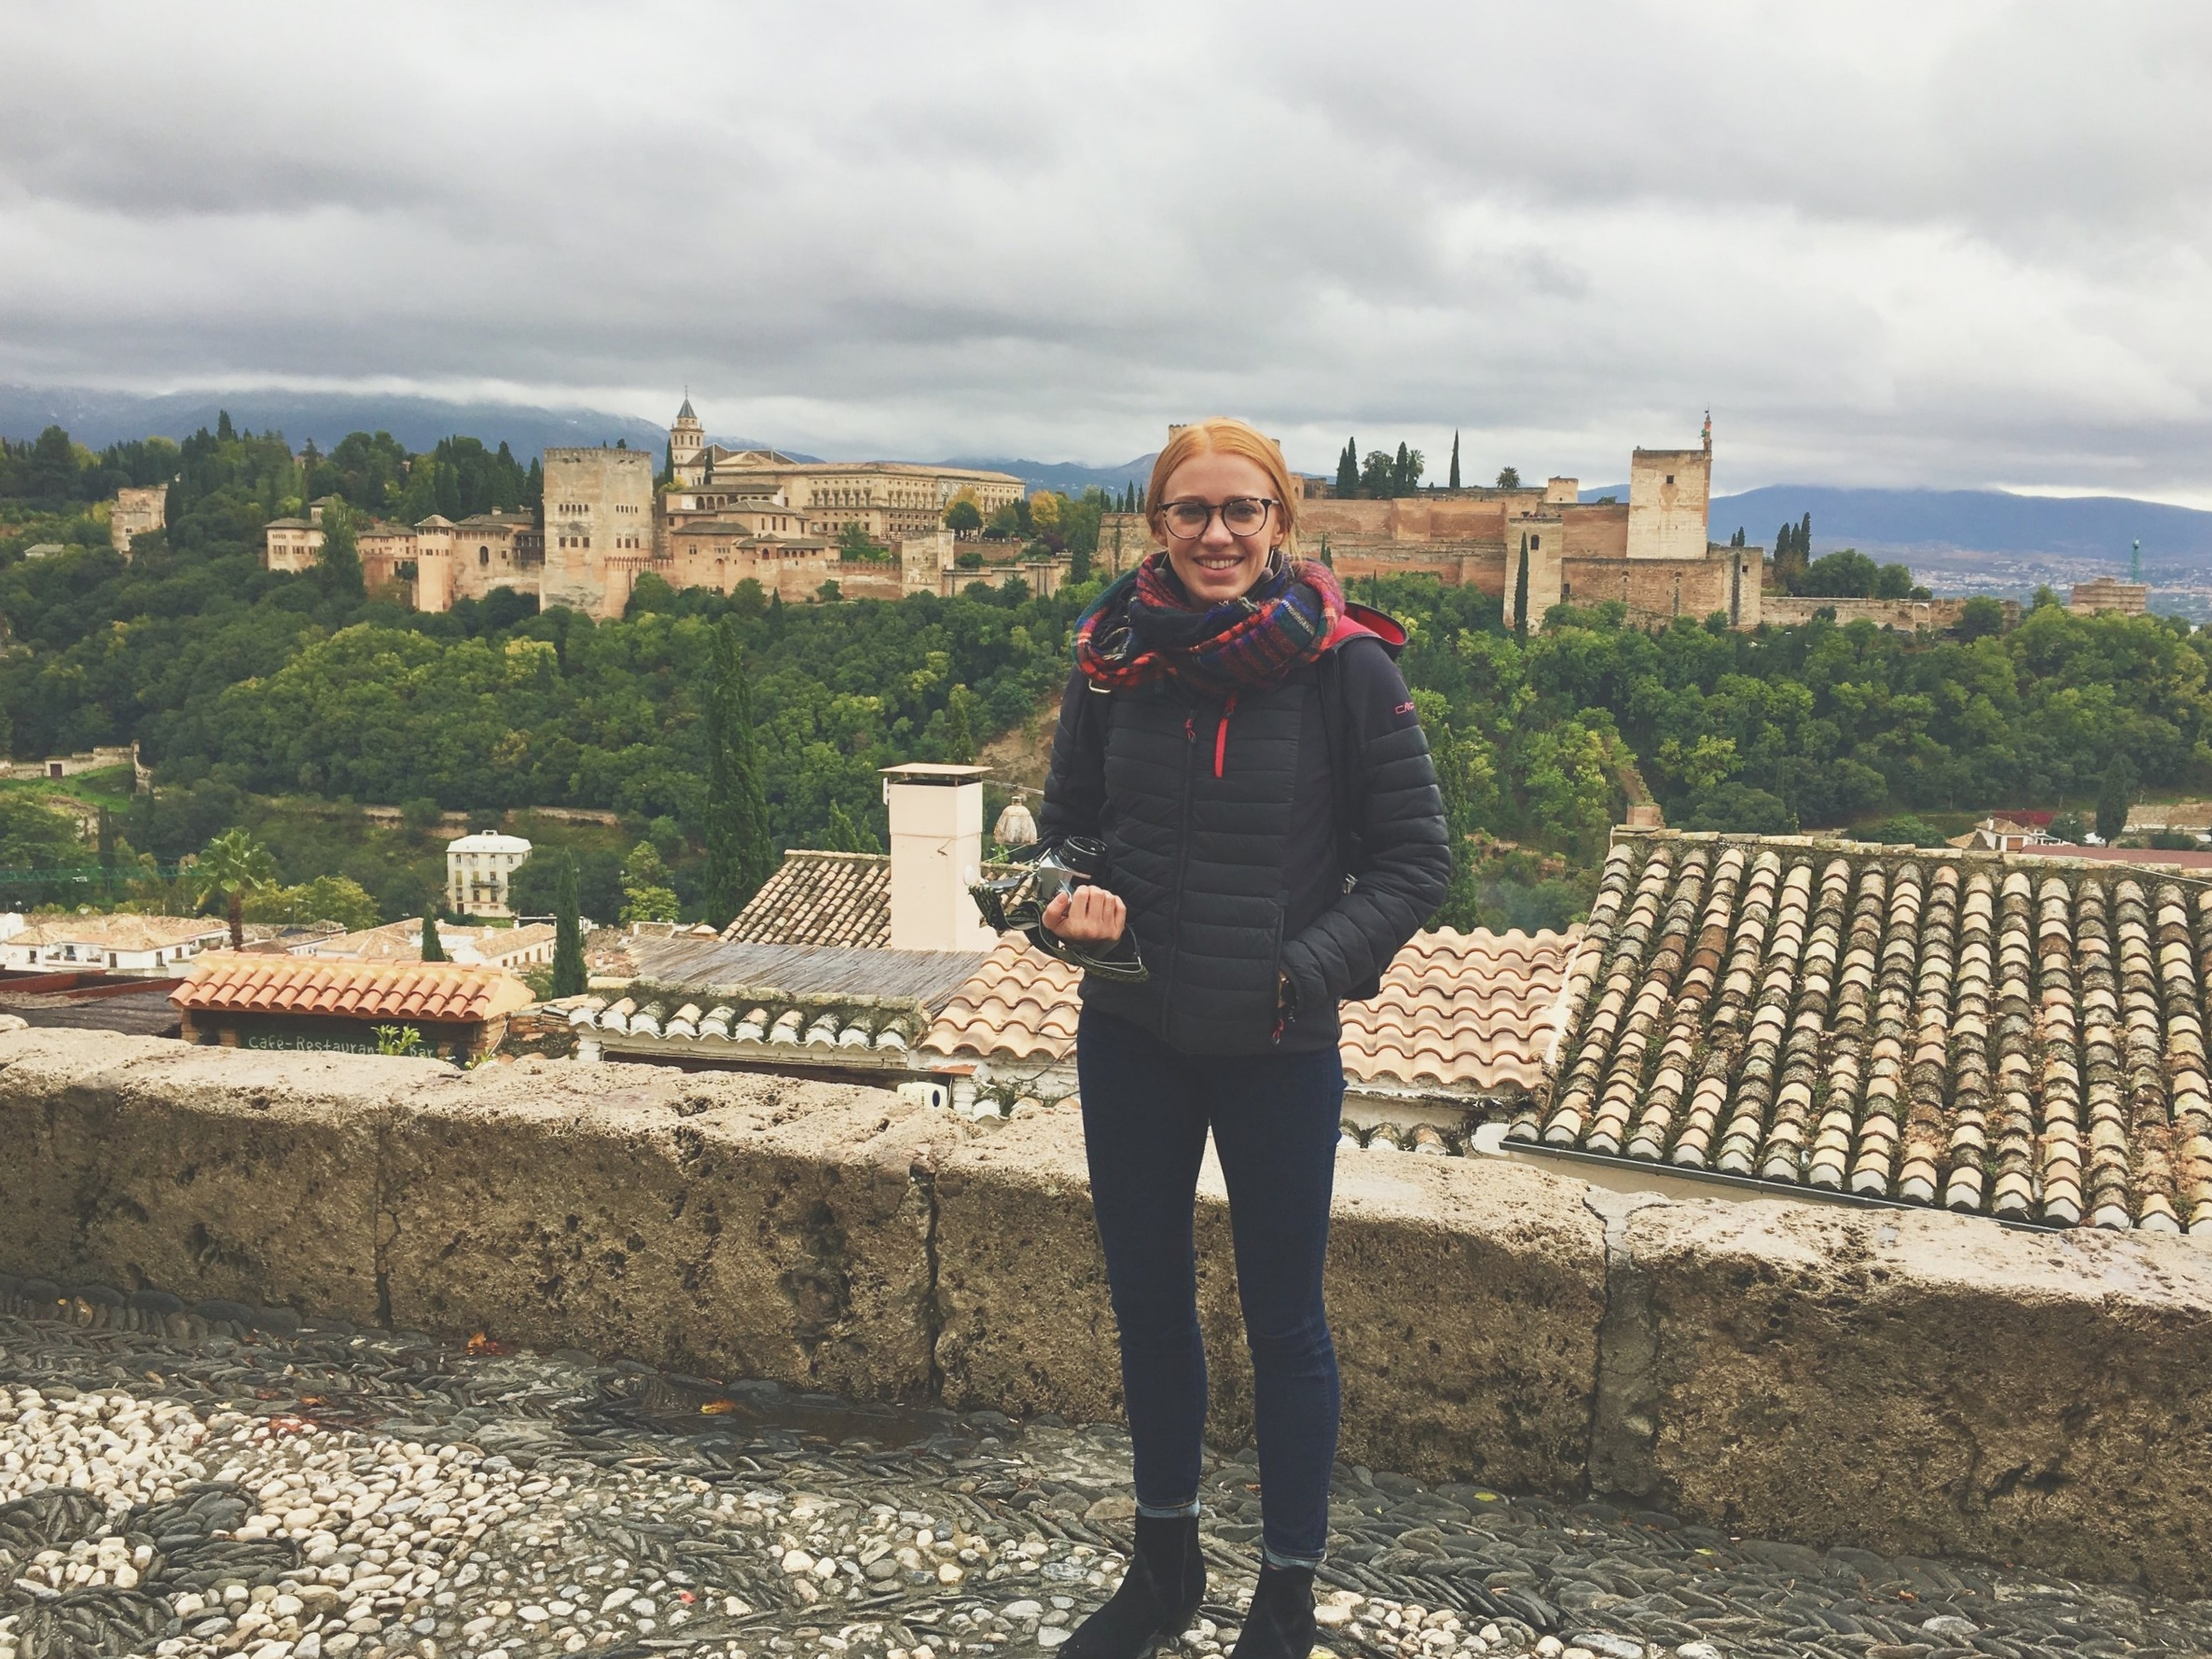 - look ma, the alhambra!